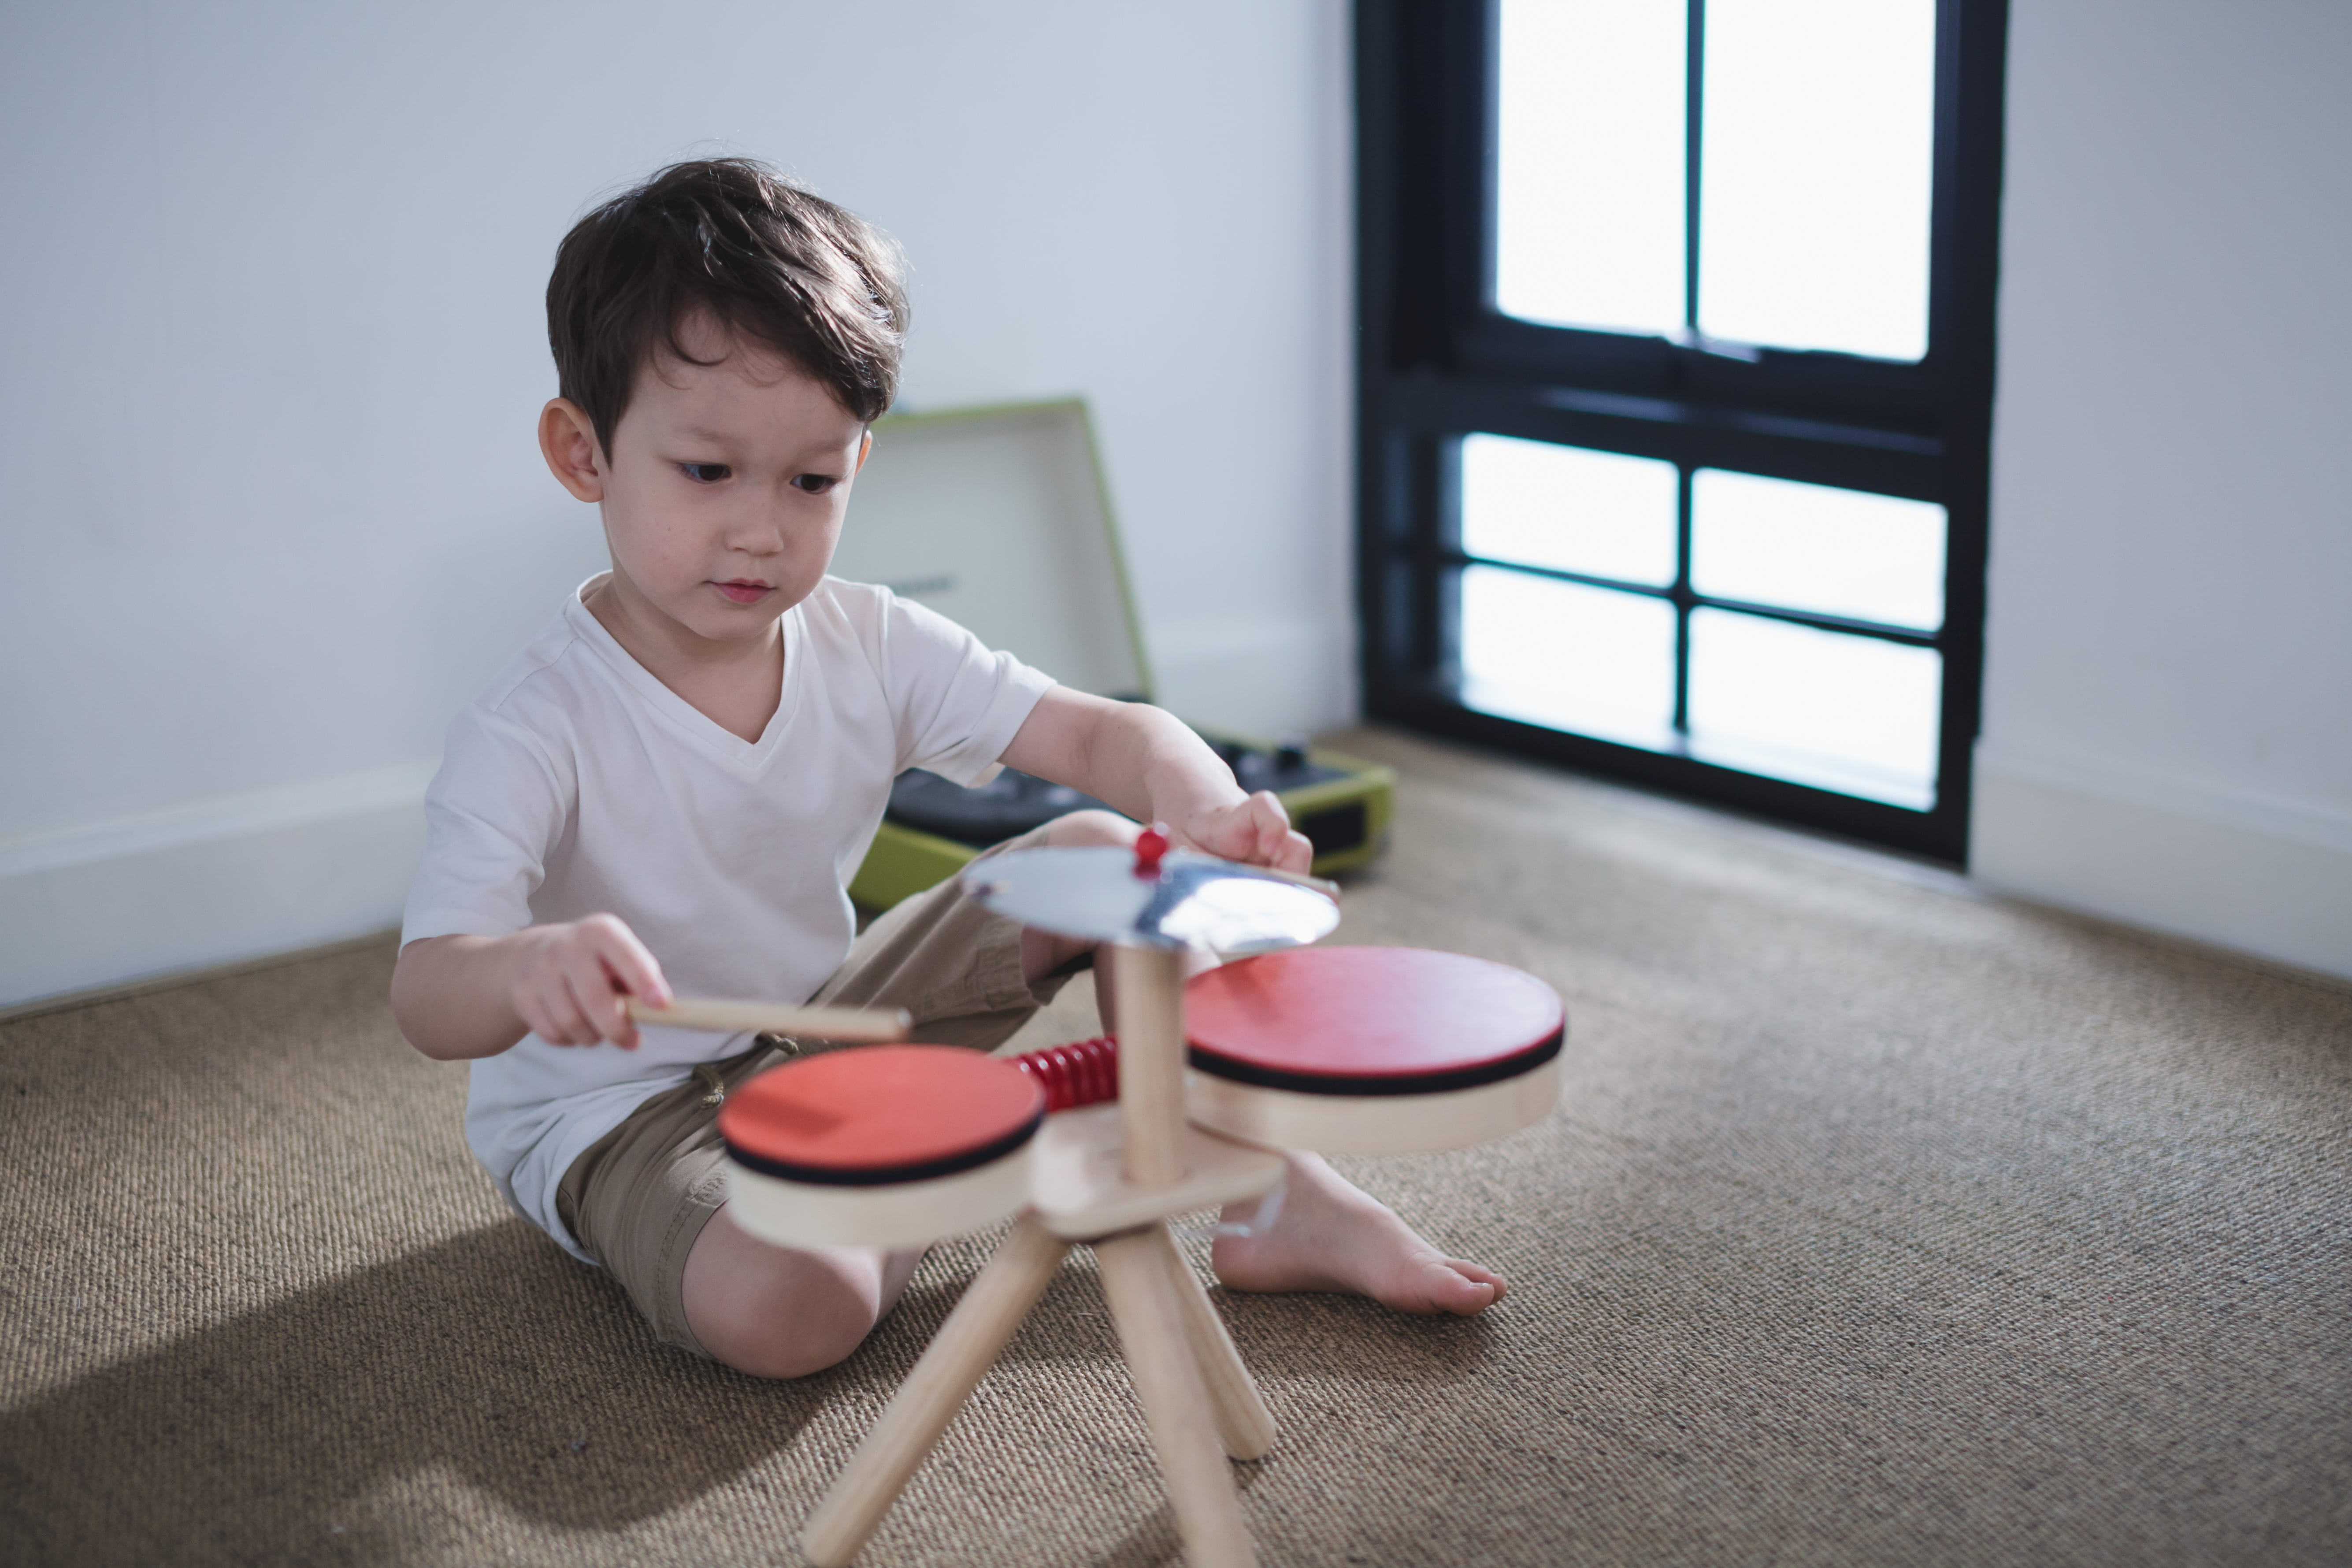 6410_PlanToys_MUSICAL_BAND_Music_Musical_Auditory_Concentration_Emotion_Coordination_Creative_3yrs_Wooden_toys_Education_toys_Safety_Toys_Non-toxic_3.jpg